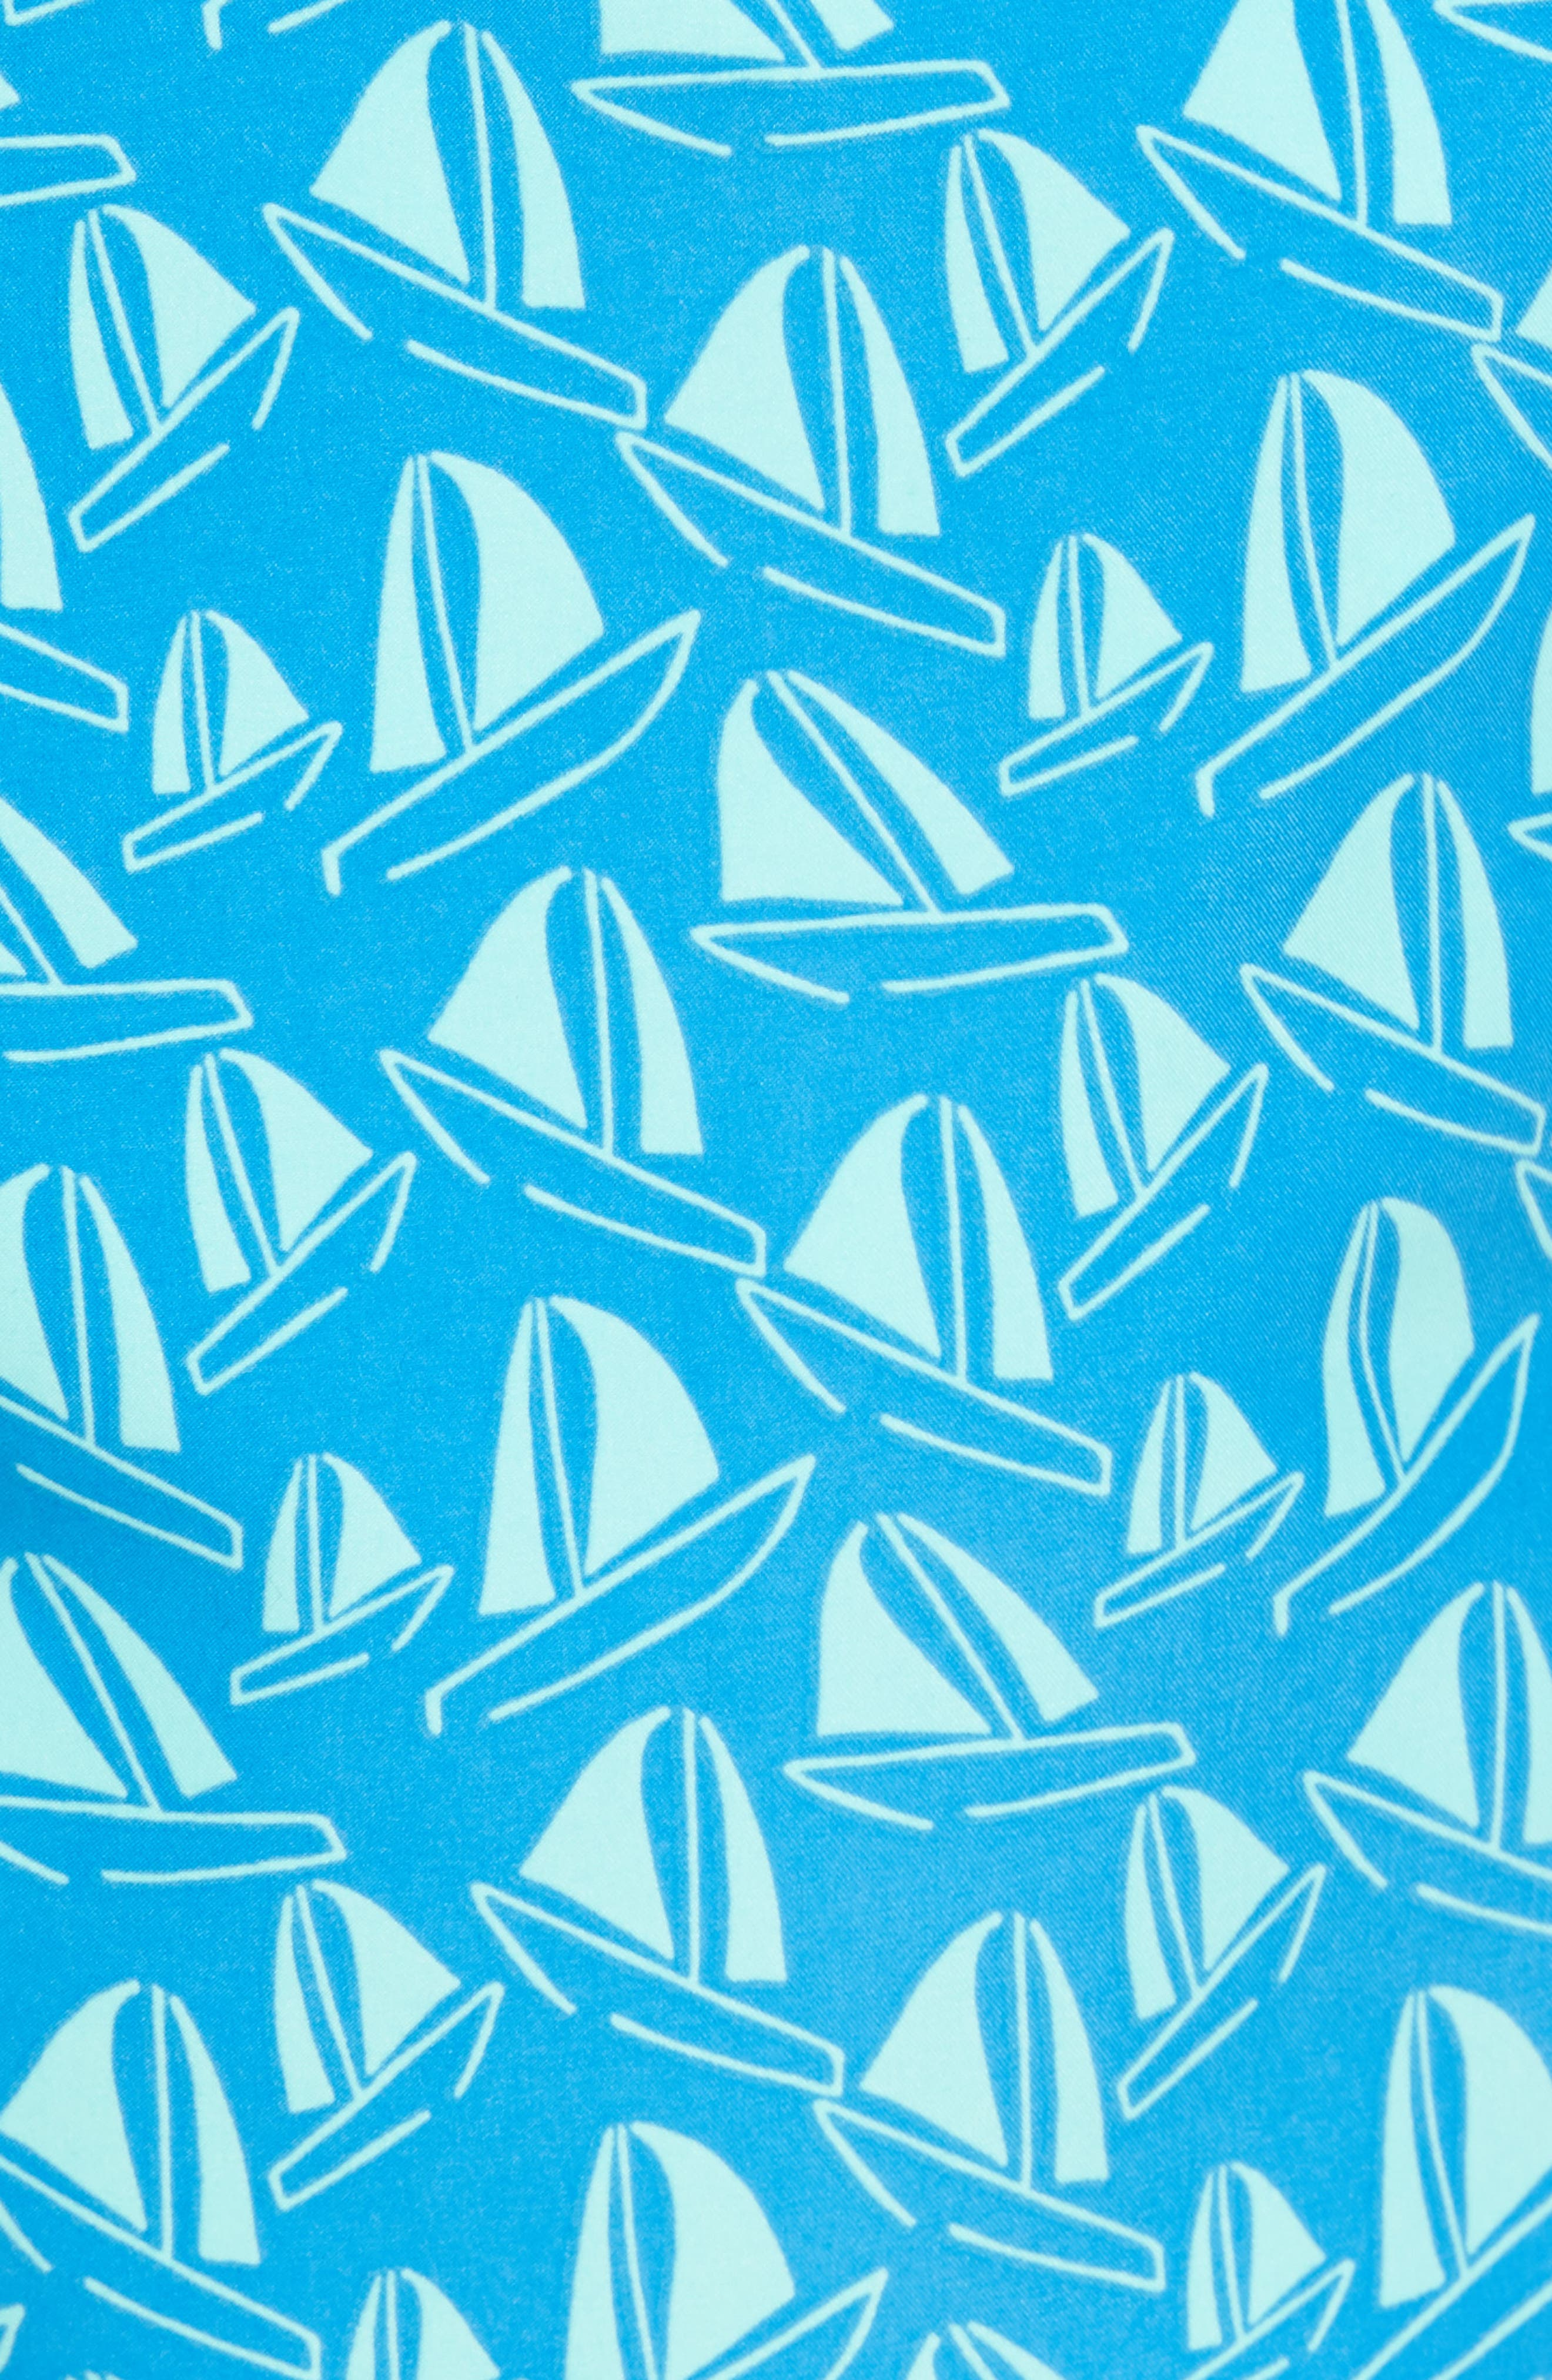 Boat Print Swim Trunks,                             Alternate thumbnail 5, color,                             French Blue And Sky